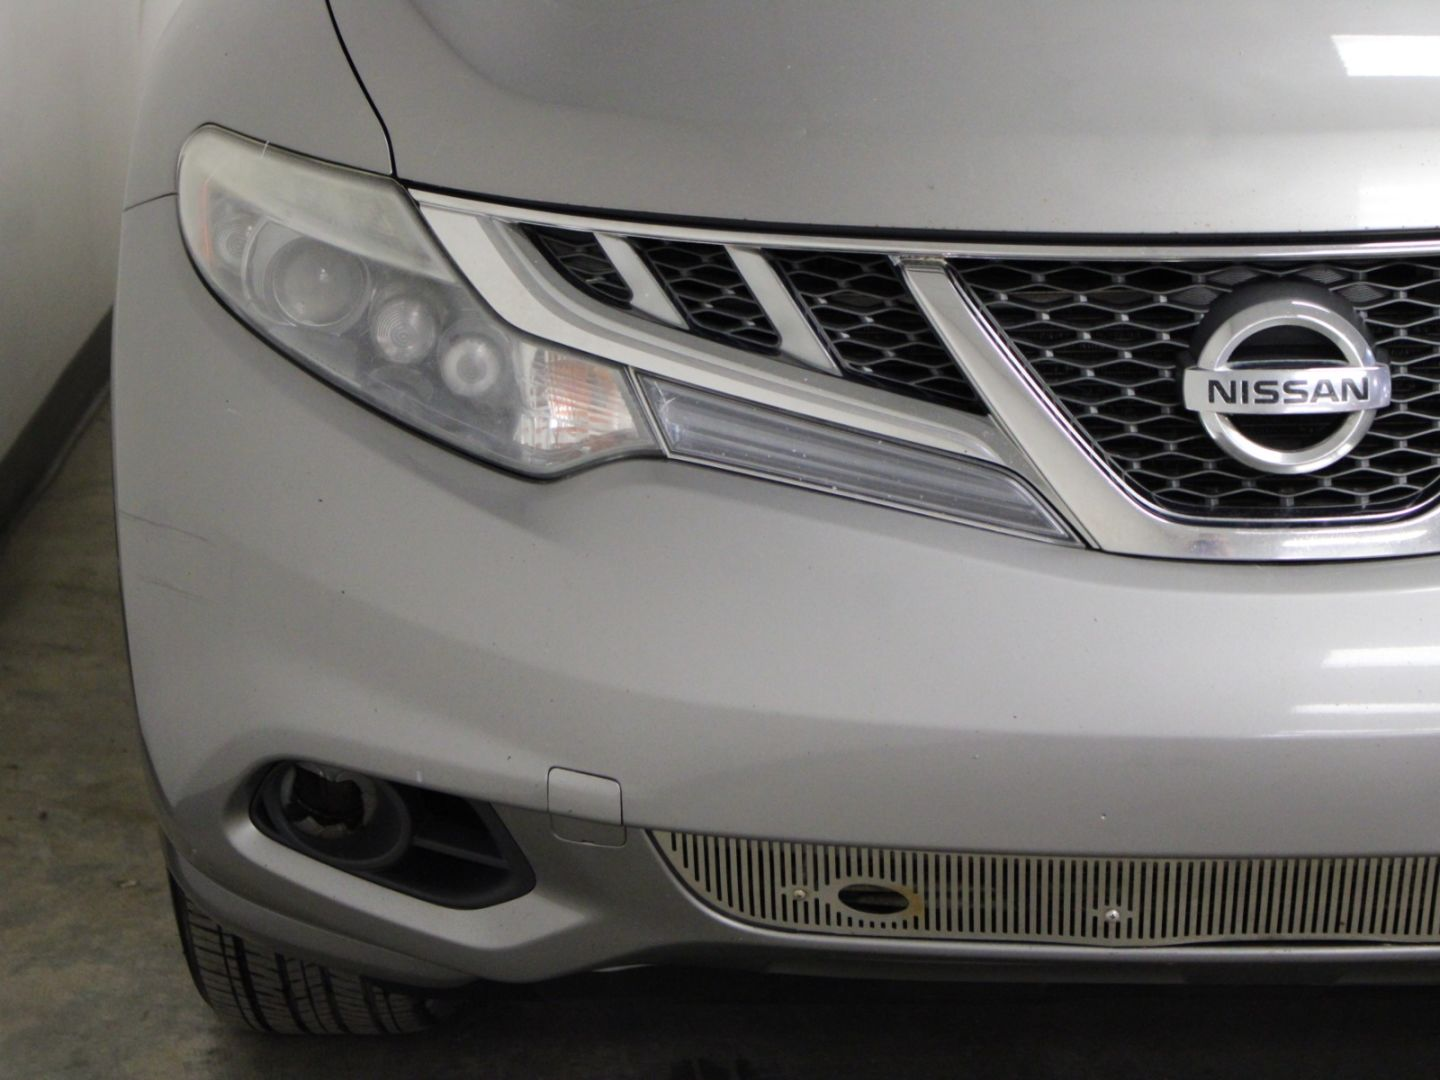 2012 Nissan Murano SL for sale in Edmonton, Alberta